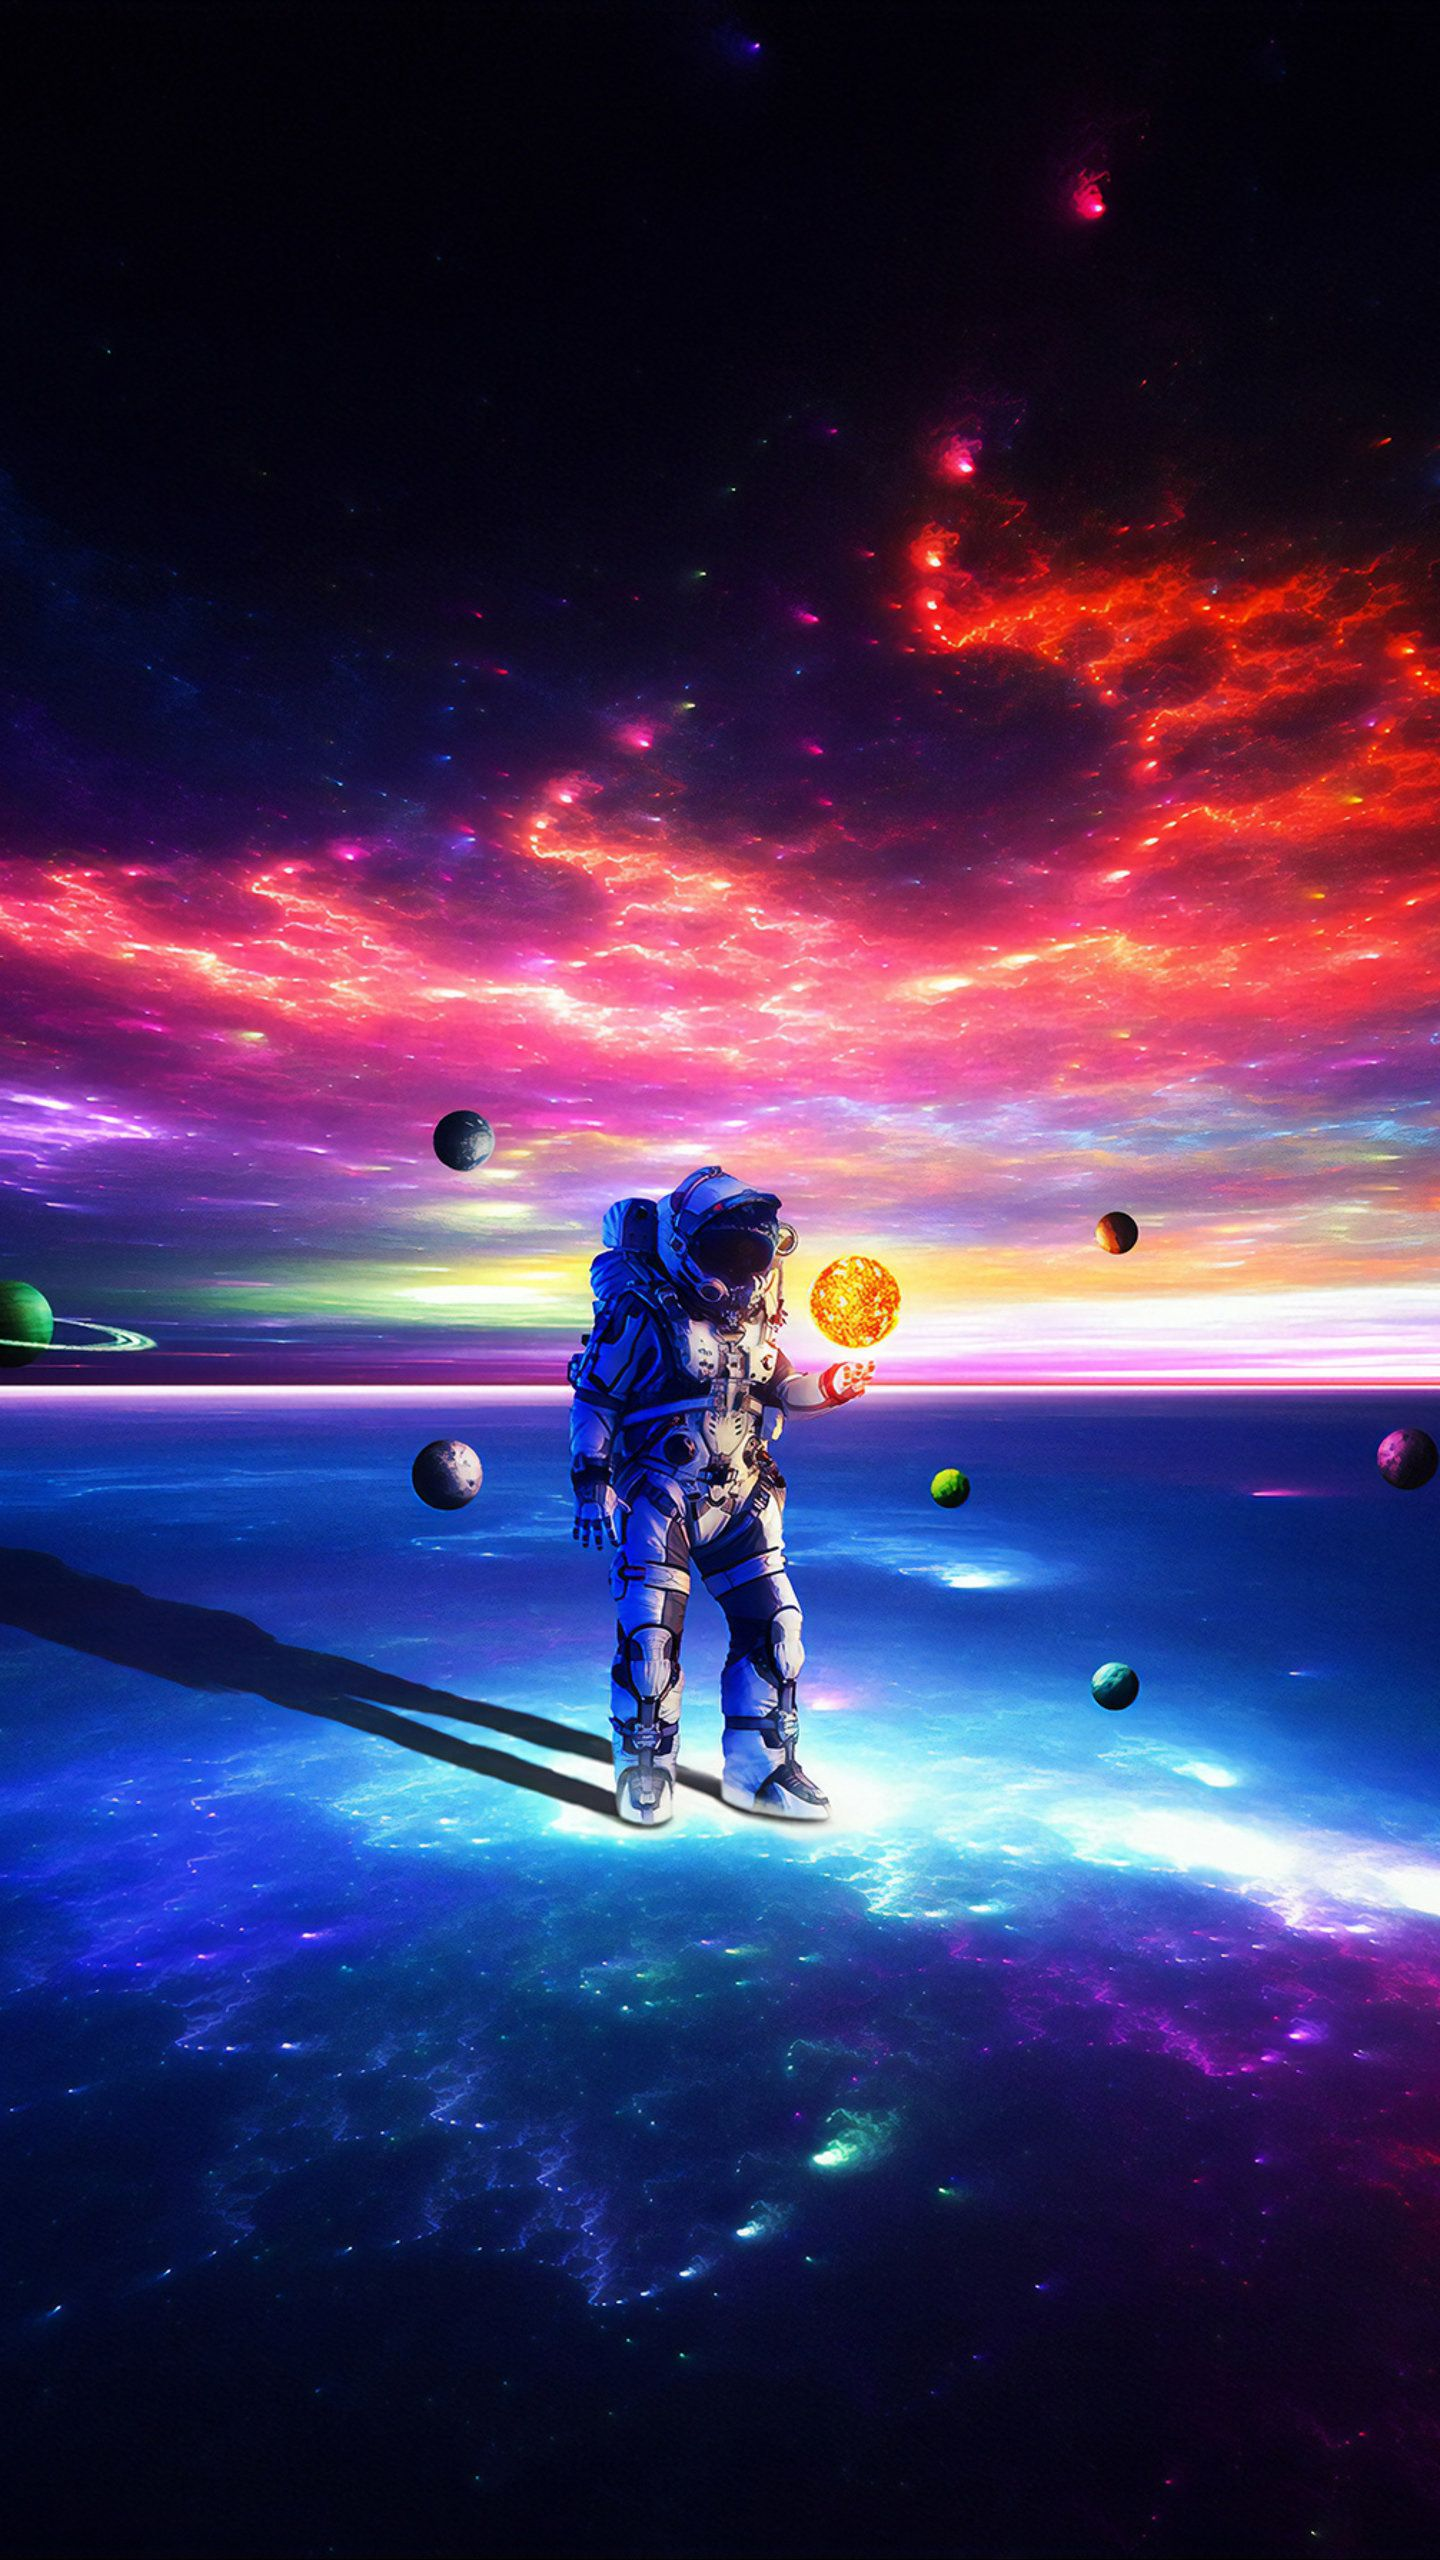 Lost Alone Astronaut Hd Wallpaper In 2020 Astronaut Wallpaper